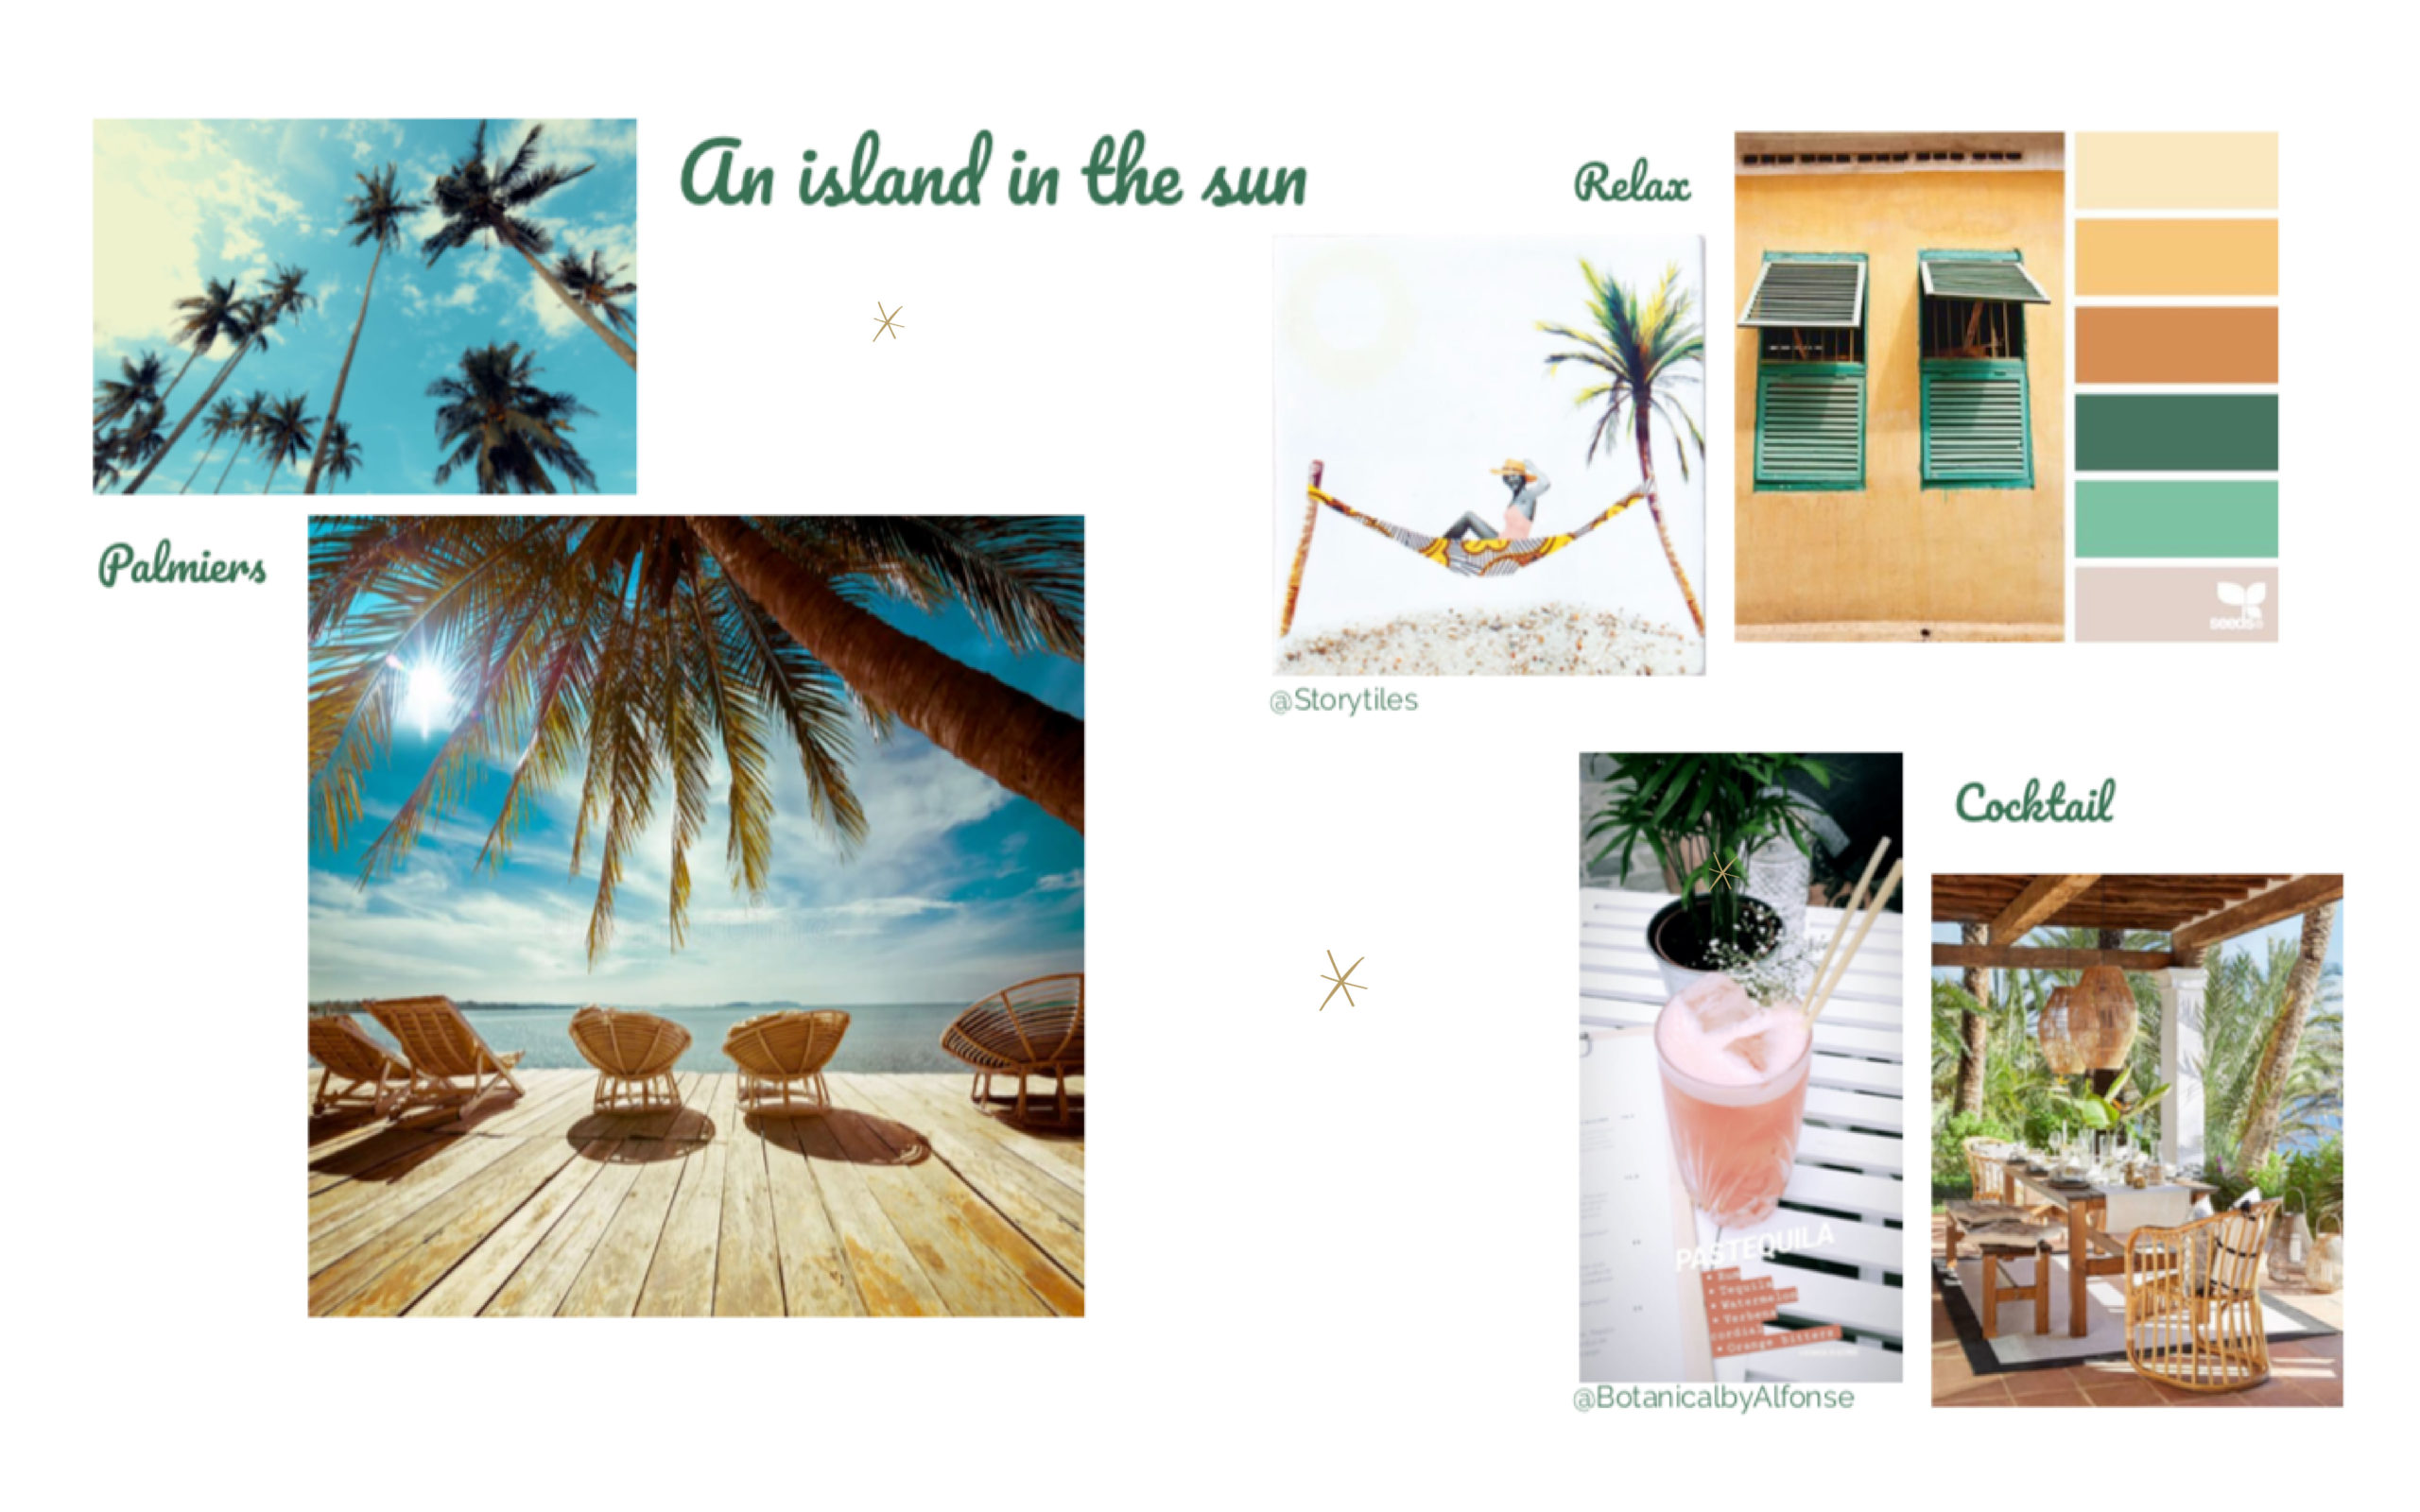 An island in the sun planche ambiance-01